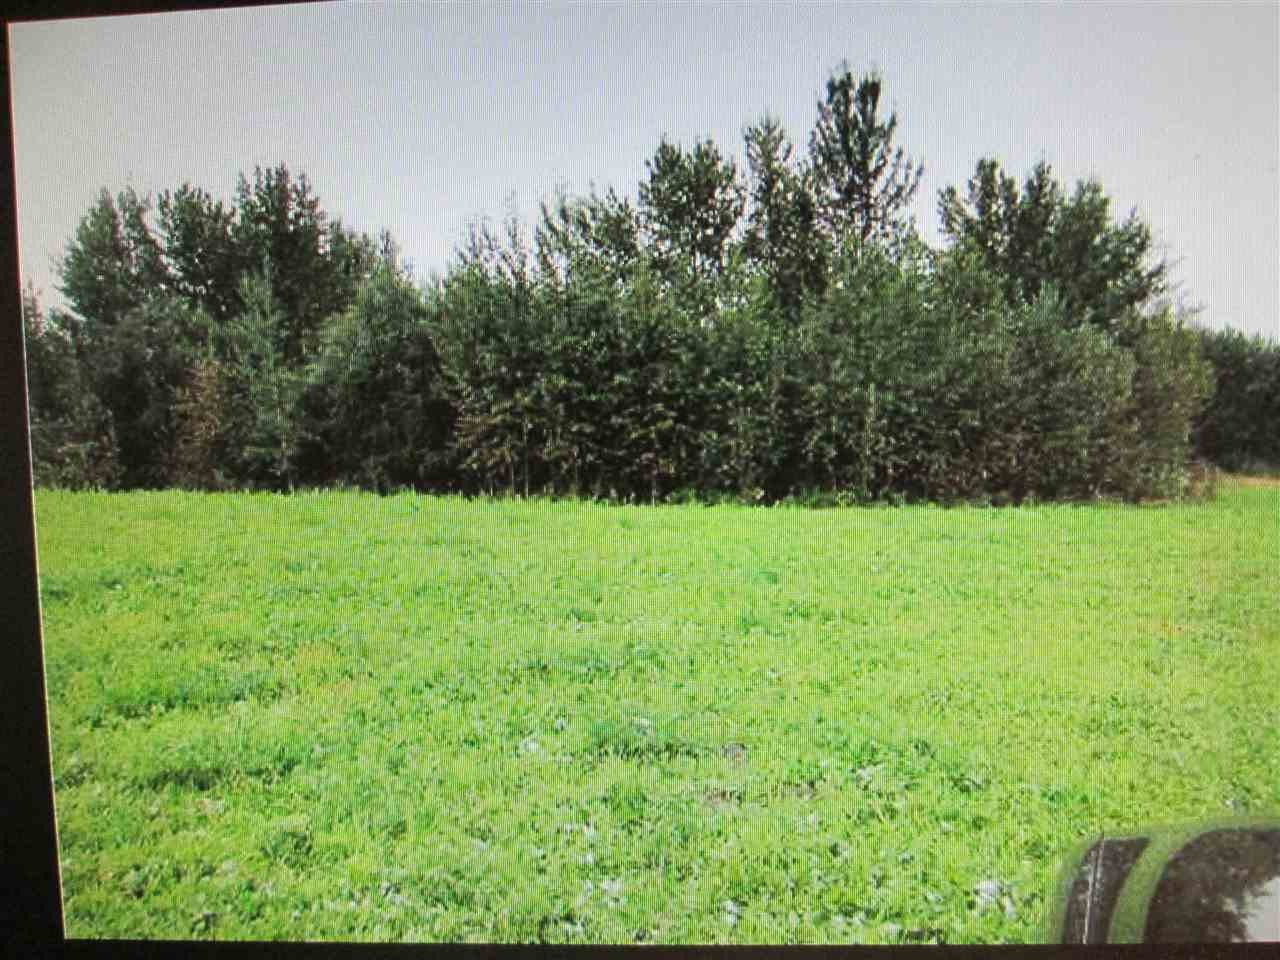 Only a couple of miles from Mulhurst and Pigeon Lake is a 5 acre lot. Close to boating, fishing, and golfing. About half of the lot is covered with trees. Large man made dugout on the property. Good high and dry land. Great opportunity to build your dream homoe or your own private camping area. Buy and build or buy and hold and store all your toys. Super value at 95,000